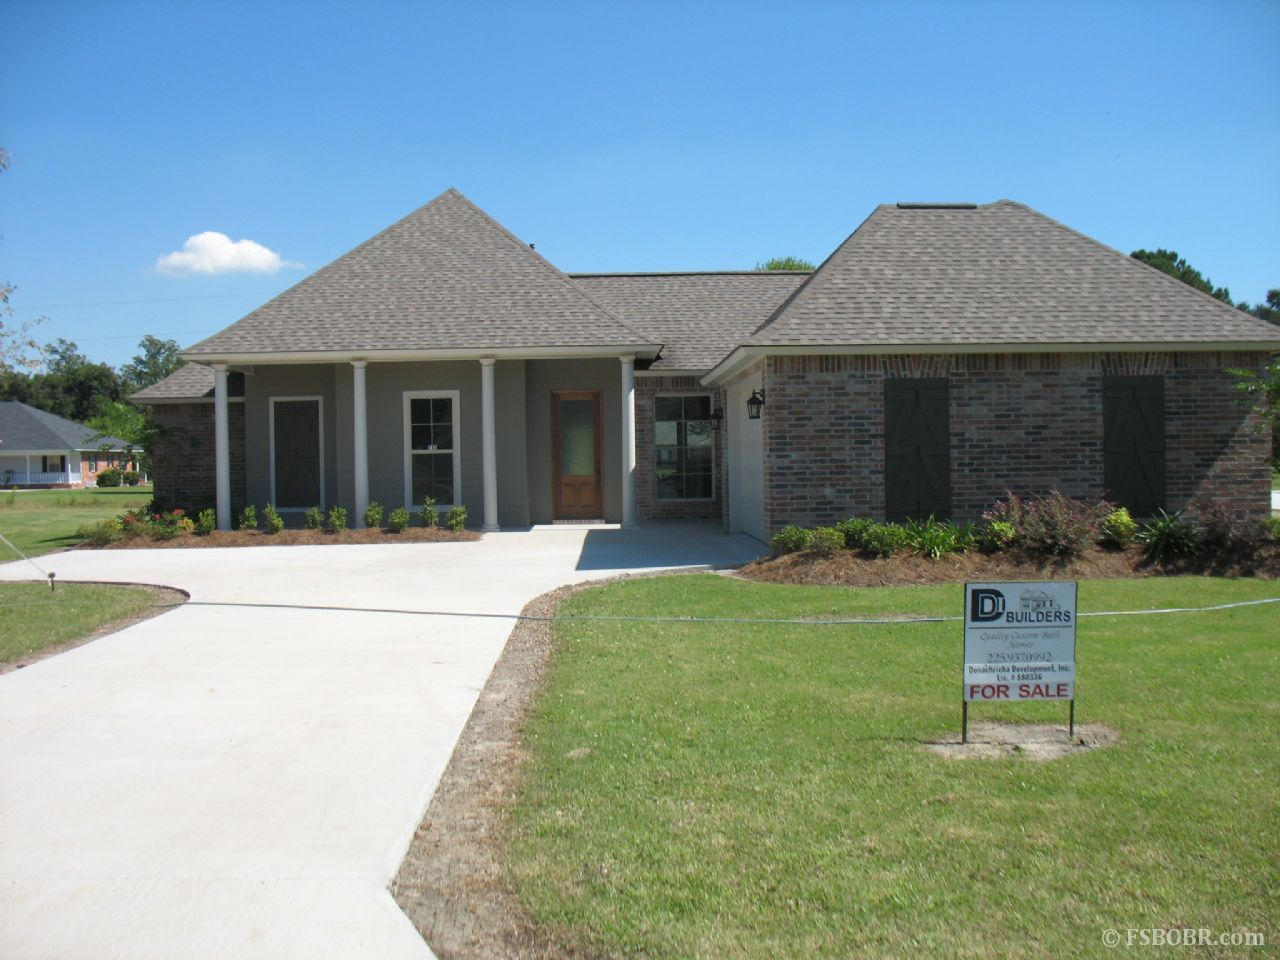 For Sale By Owner Listings by FSBOBR.com. Baton Rouge FSBO and